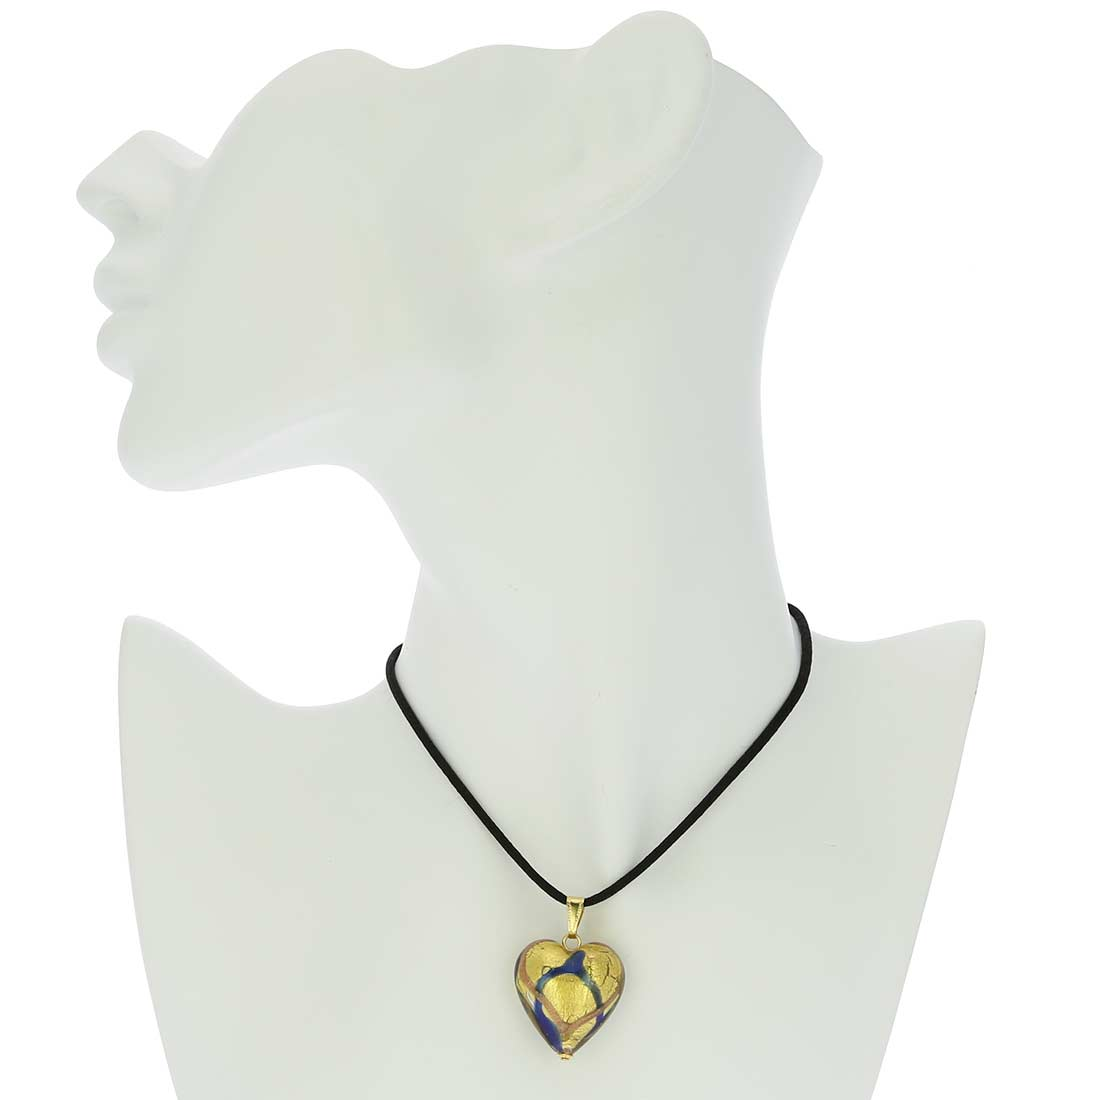 Murano Heart Pendant - Blue Waves Gold